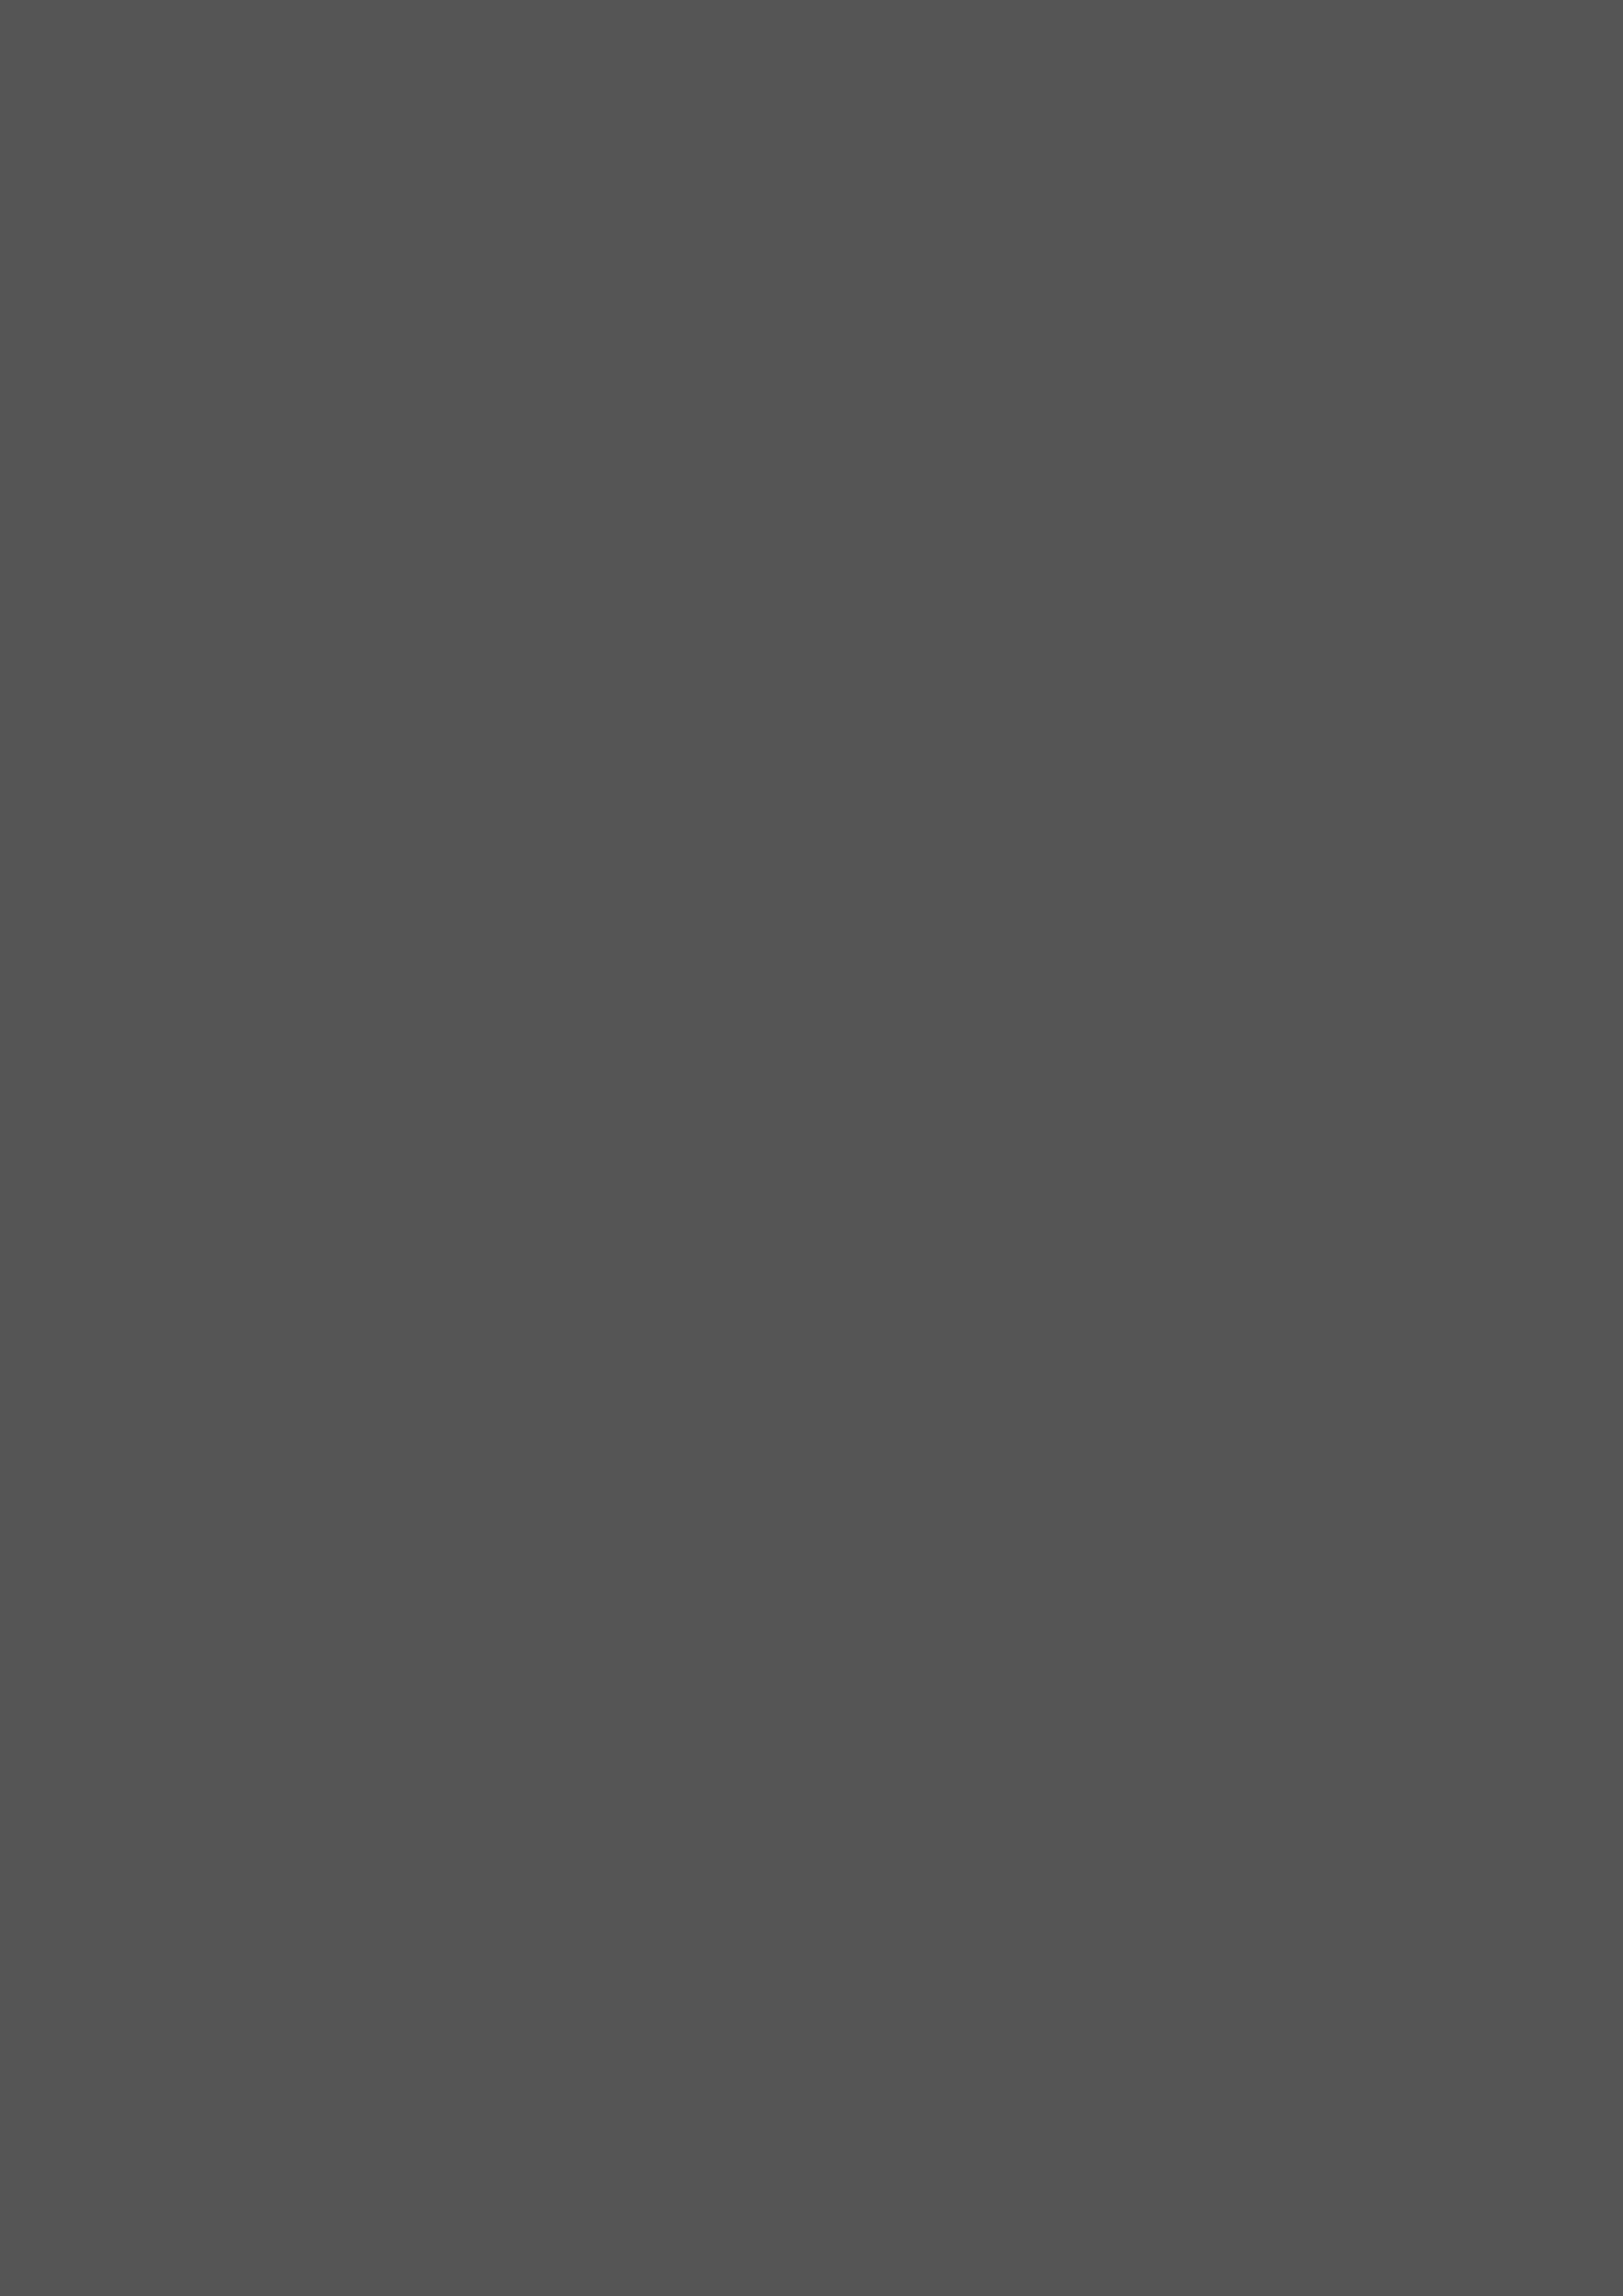 2480x3508 Davys Grey Solid Color Background